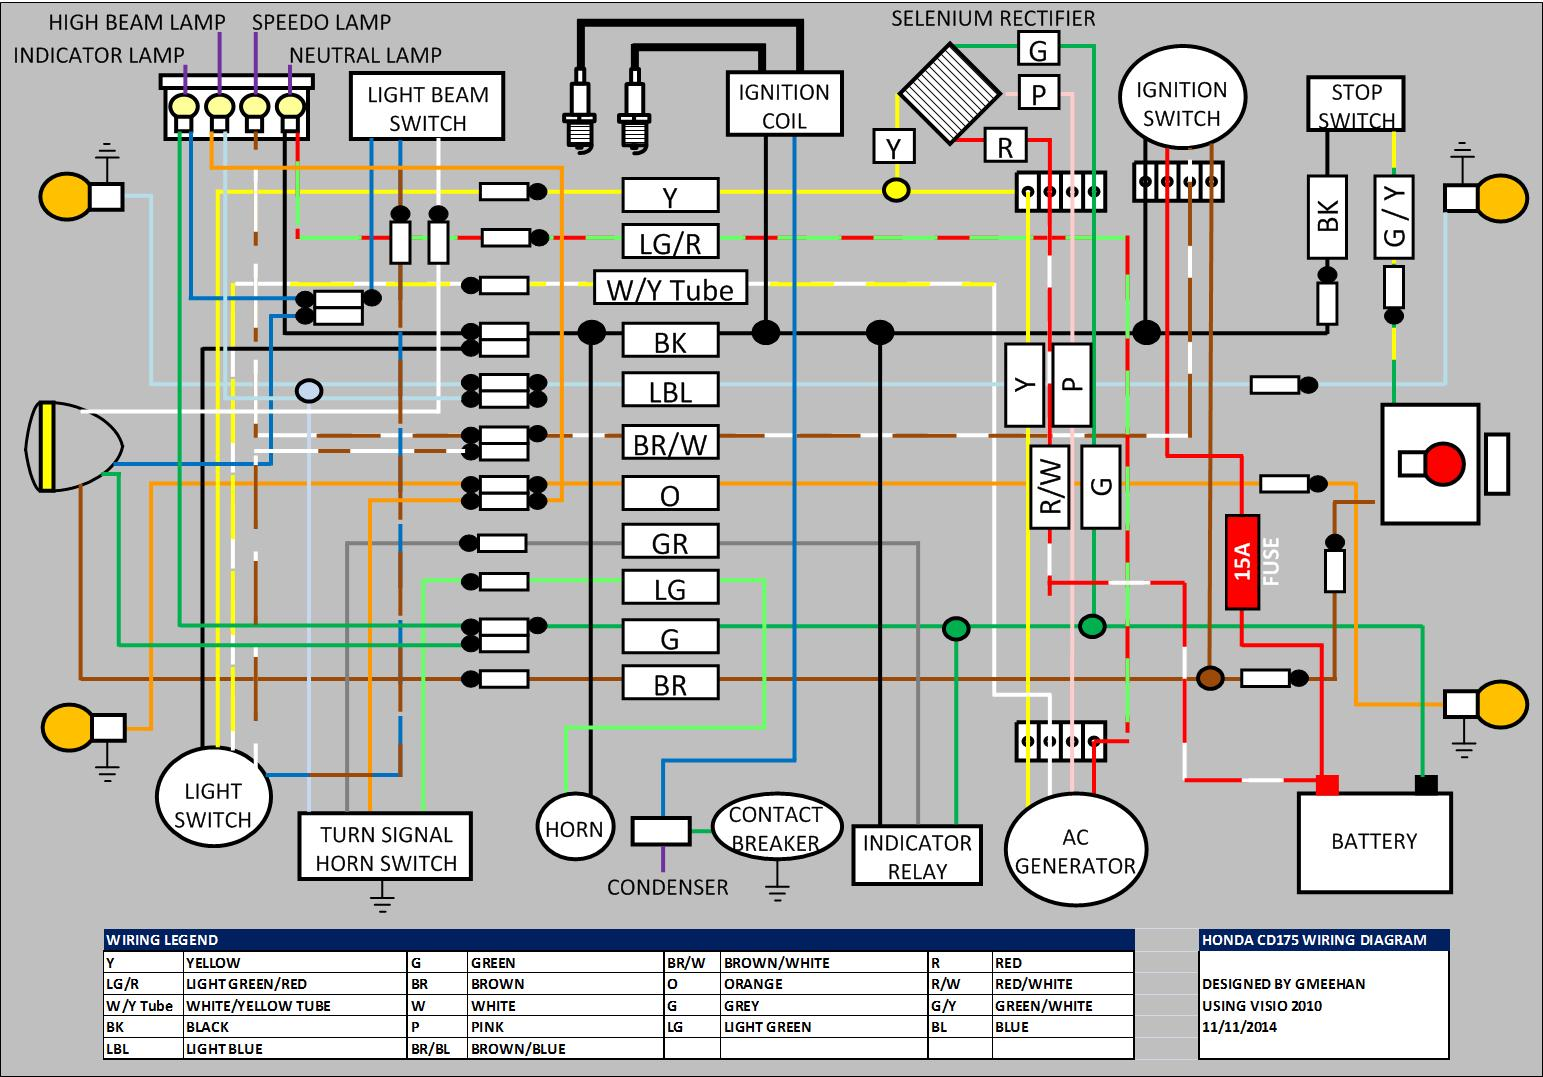 honda cd175 wiring diagram wiring diagram of honda livo #1